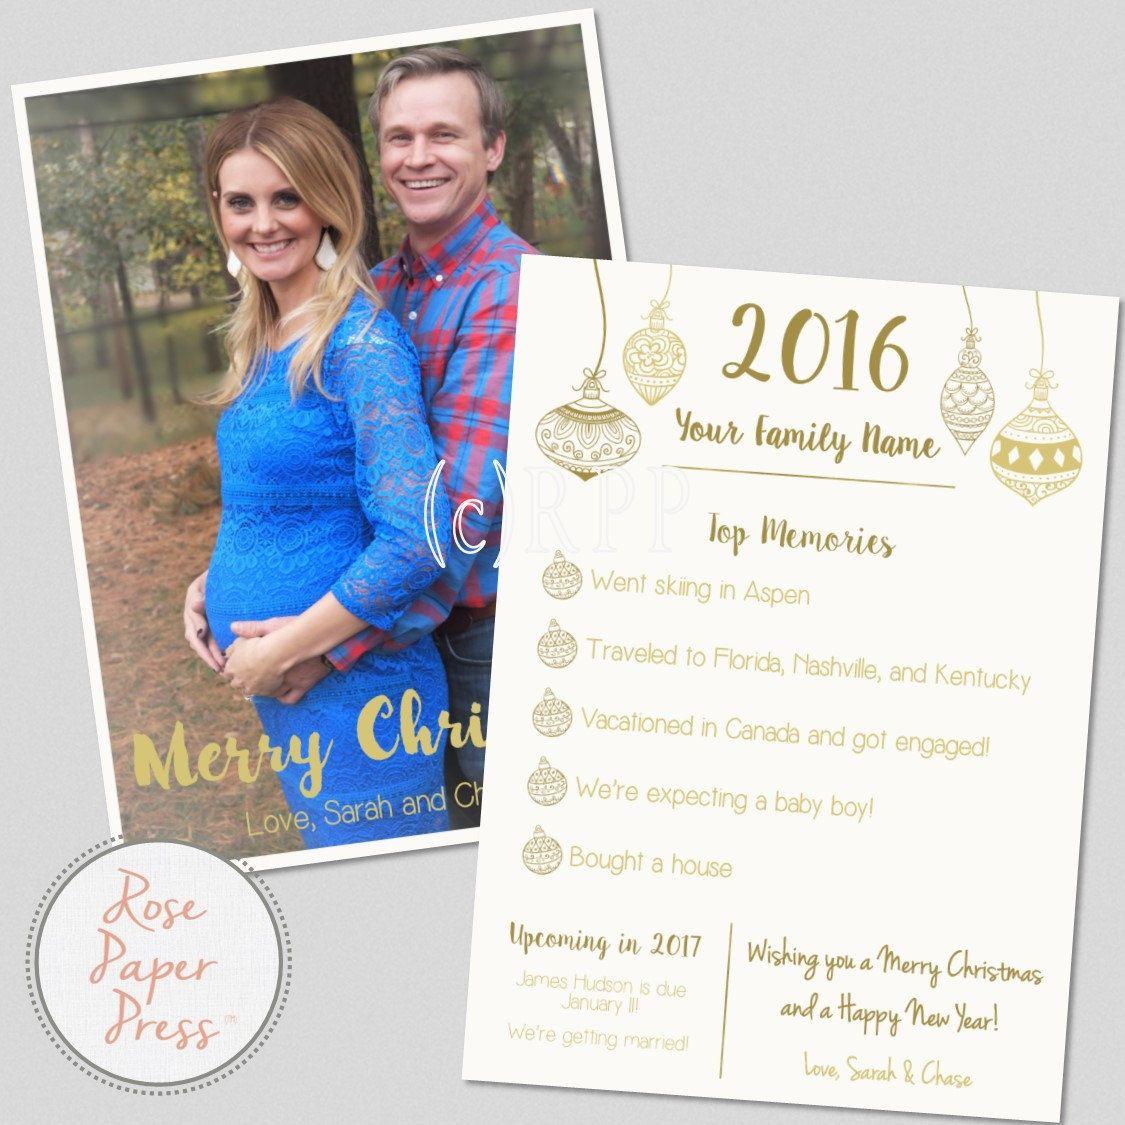 Gold Ornaments Christmas Card   Year in Review   Top Memories  Photo Holiday Card   Personalized Digital Printable File by RosePaperPress on Etsy